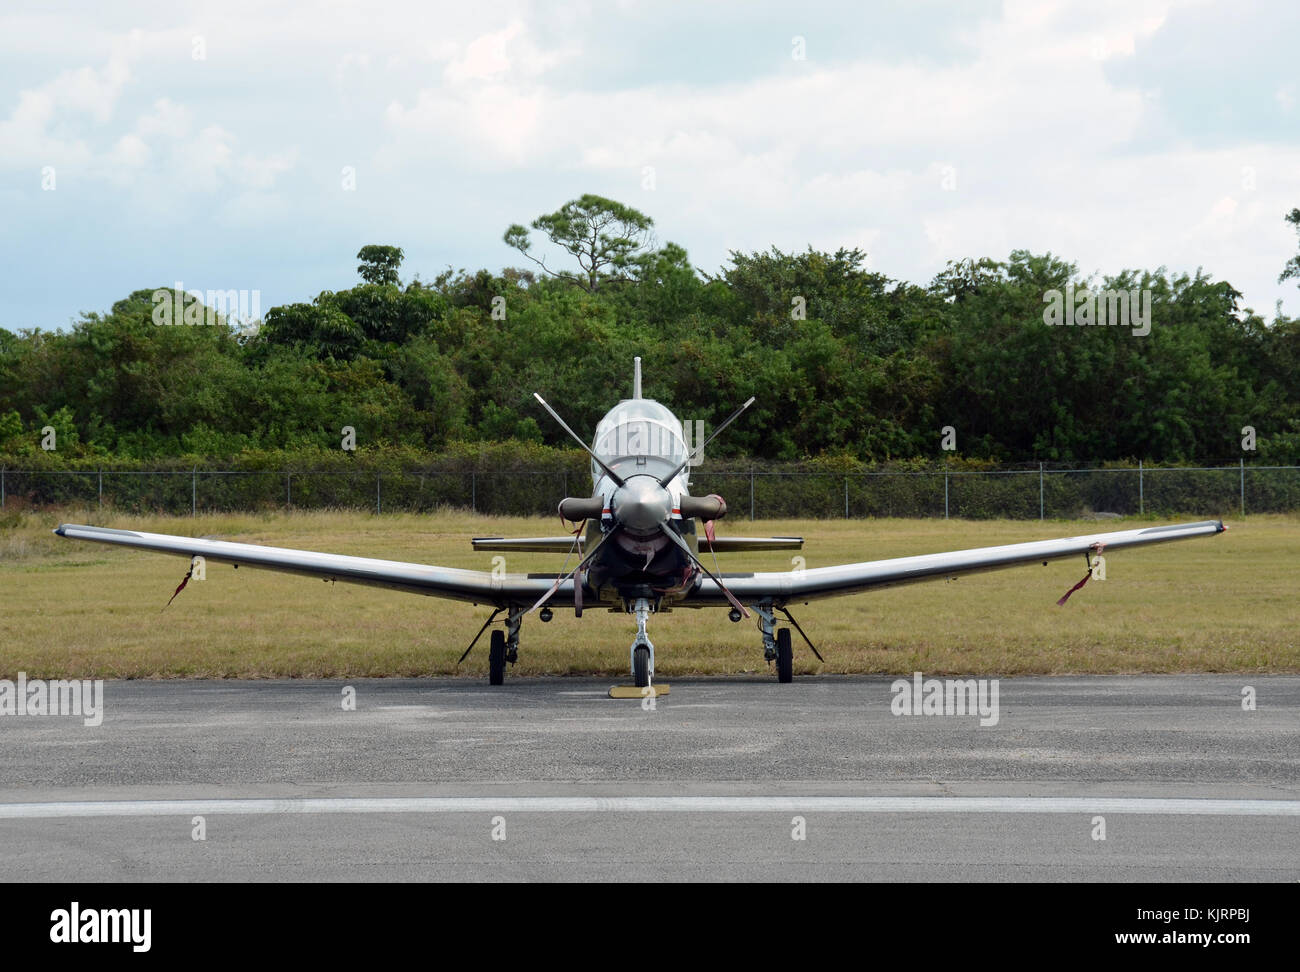 Modern single engine urboprop airplane front view - Stock Image